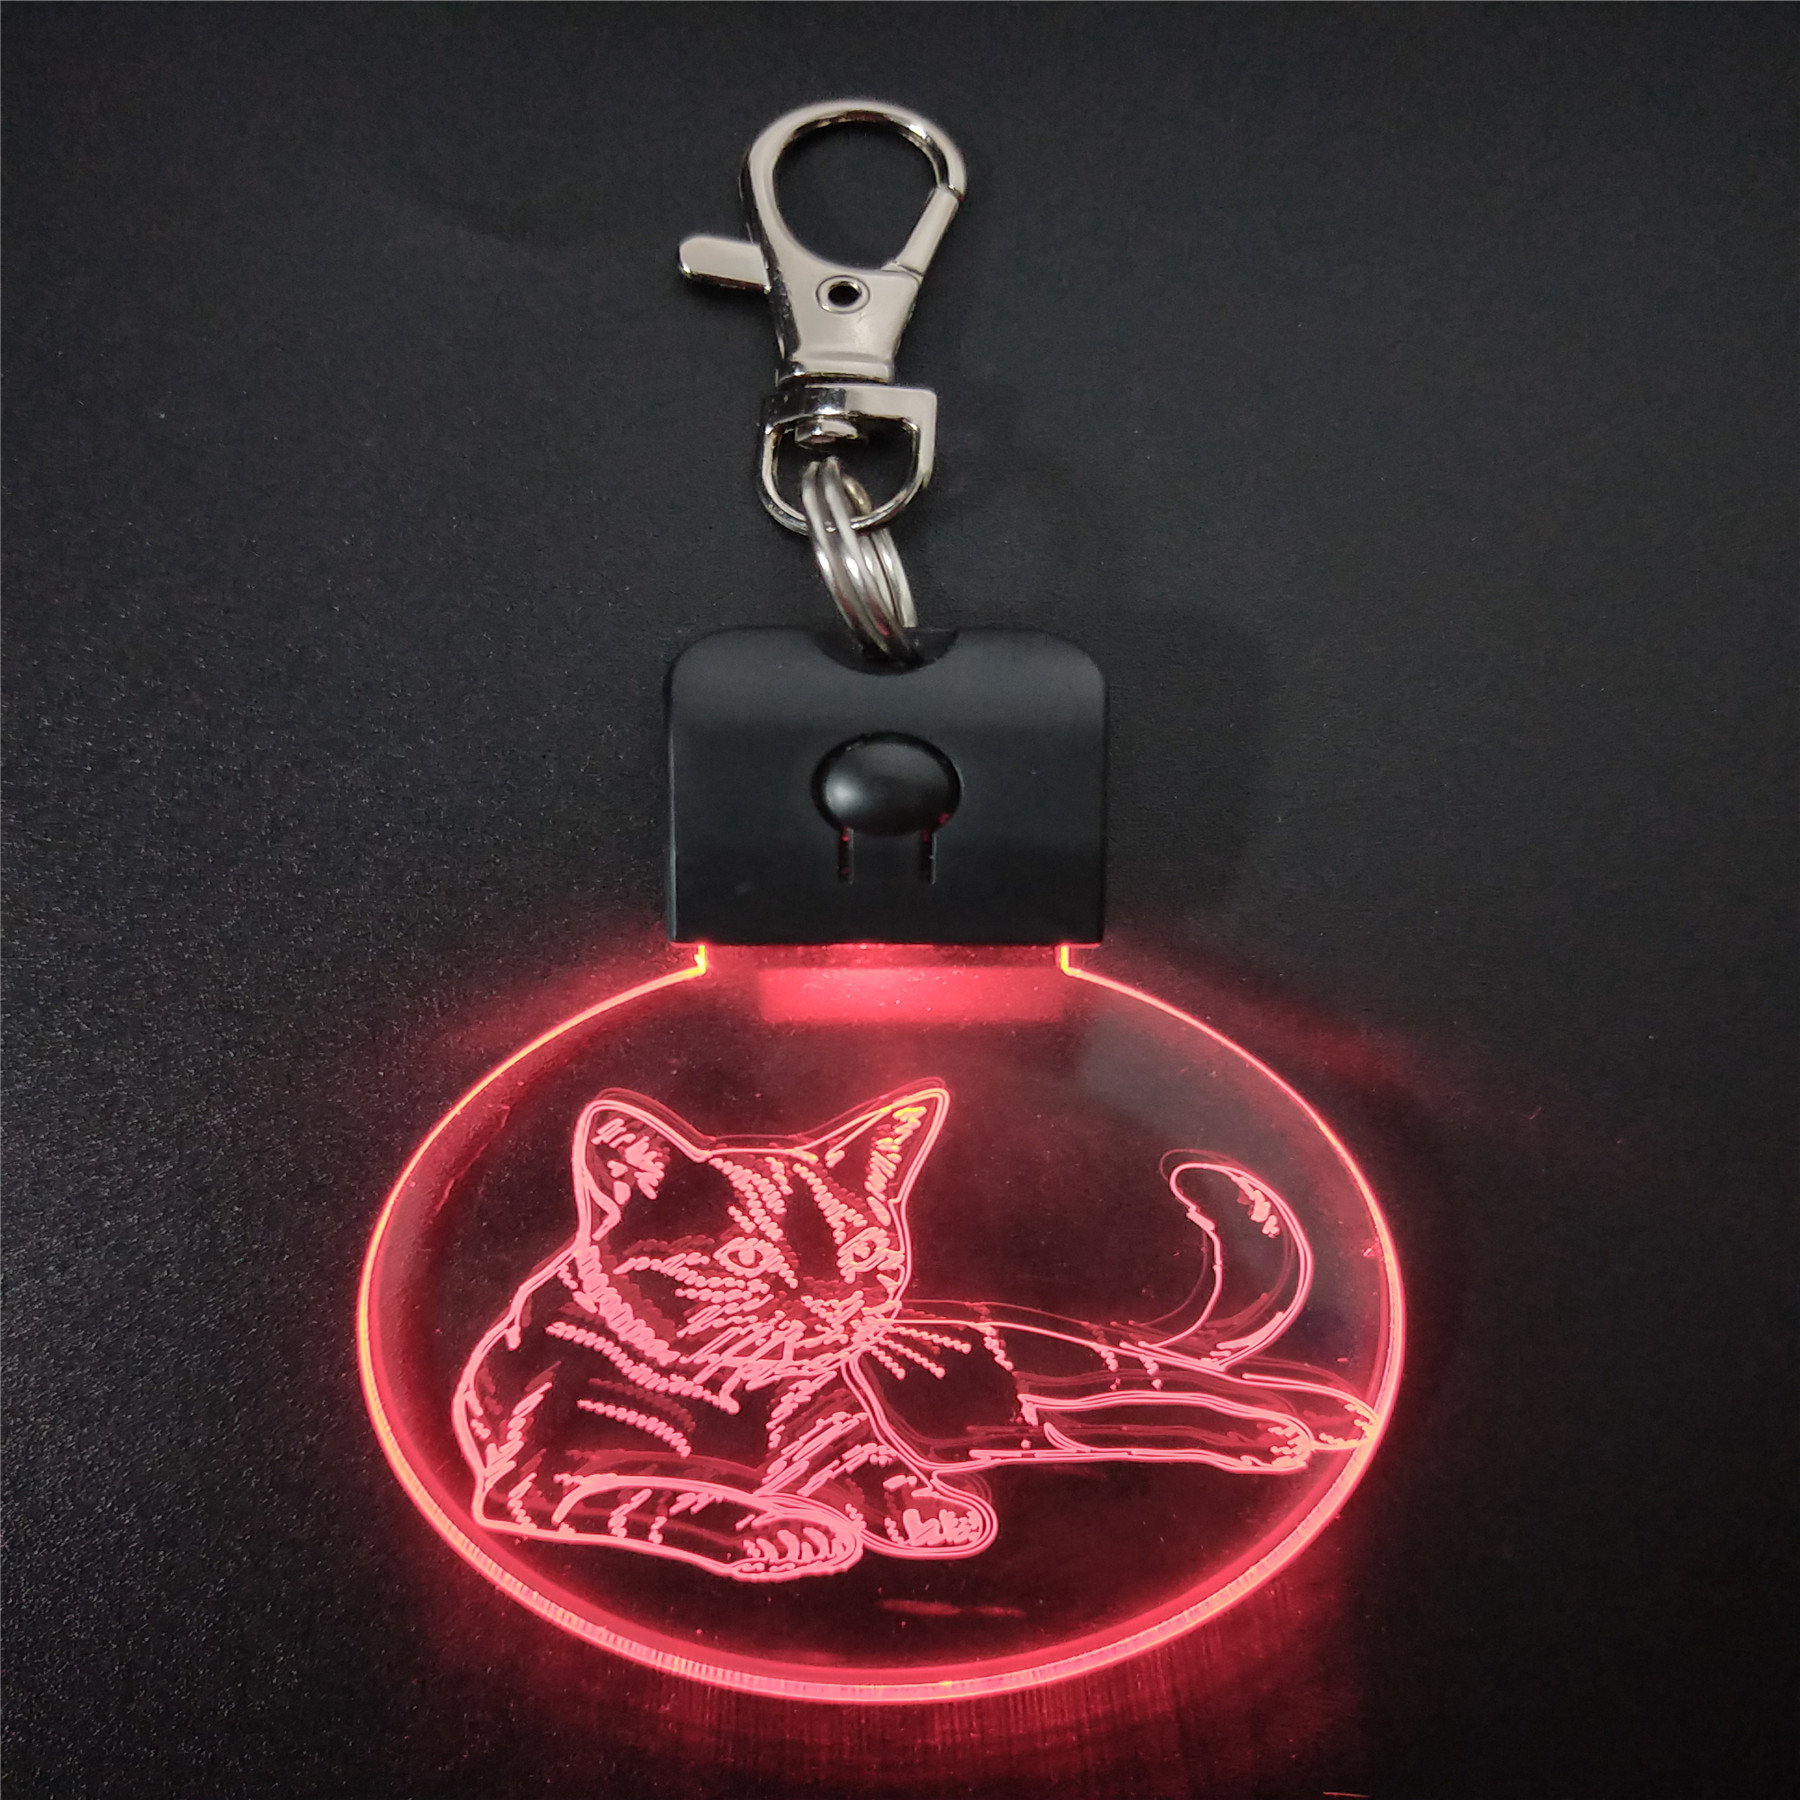 Sleeping Cat KeyChain 3D ABS Arylic Night Light LED Magical Table Lamp Lighting Colors Decoration Gift With Li Battery Dropship